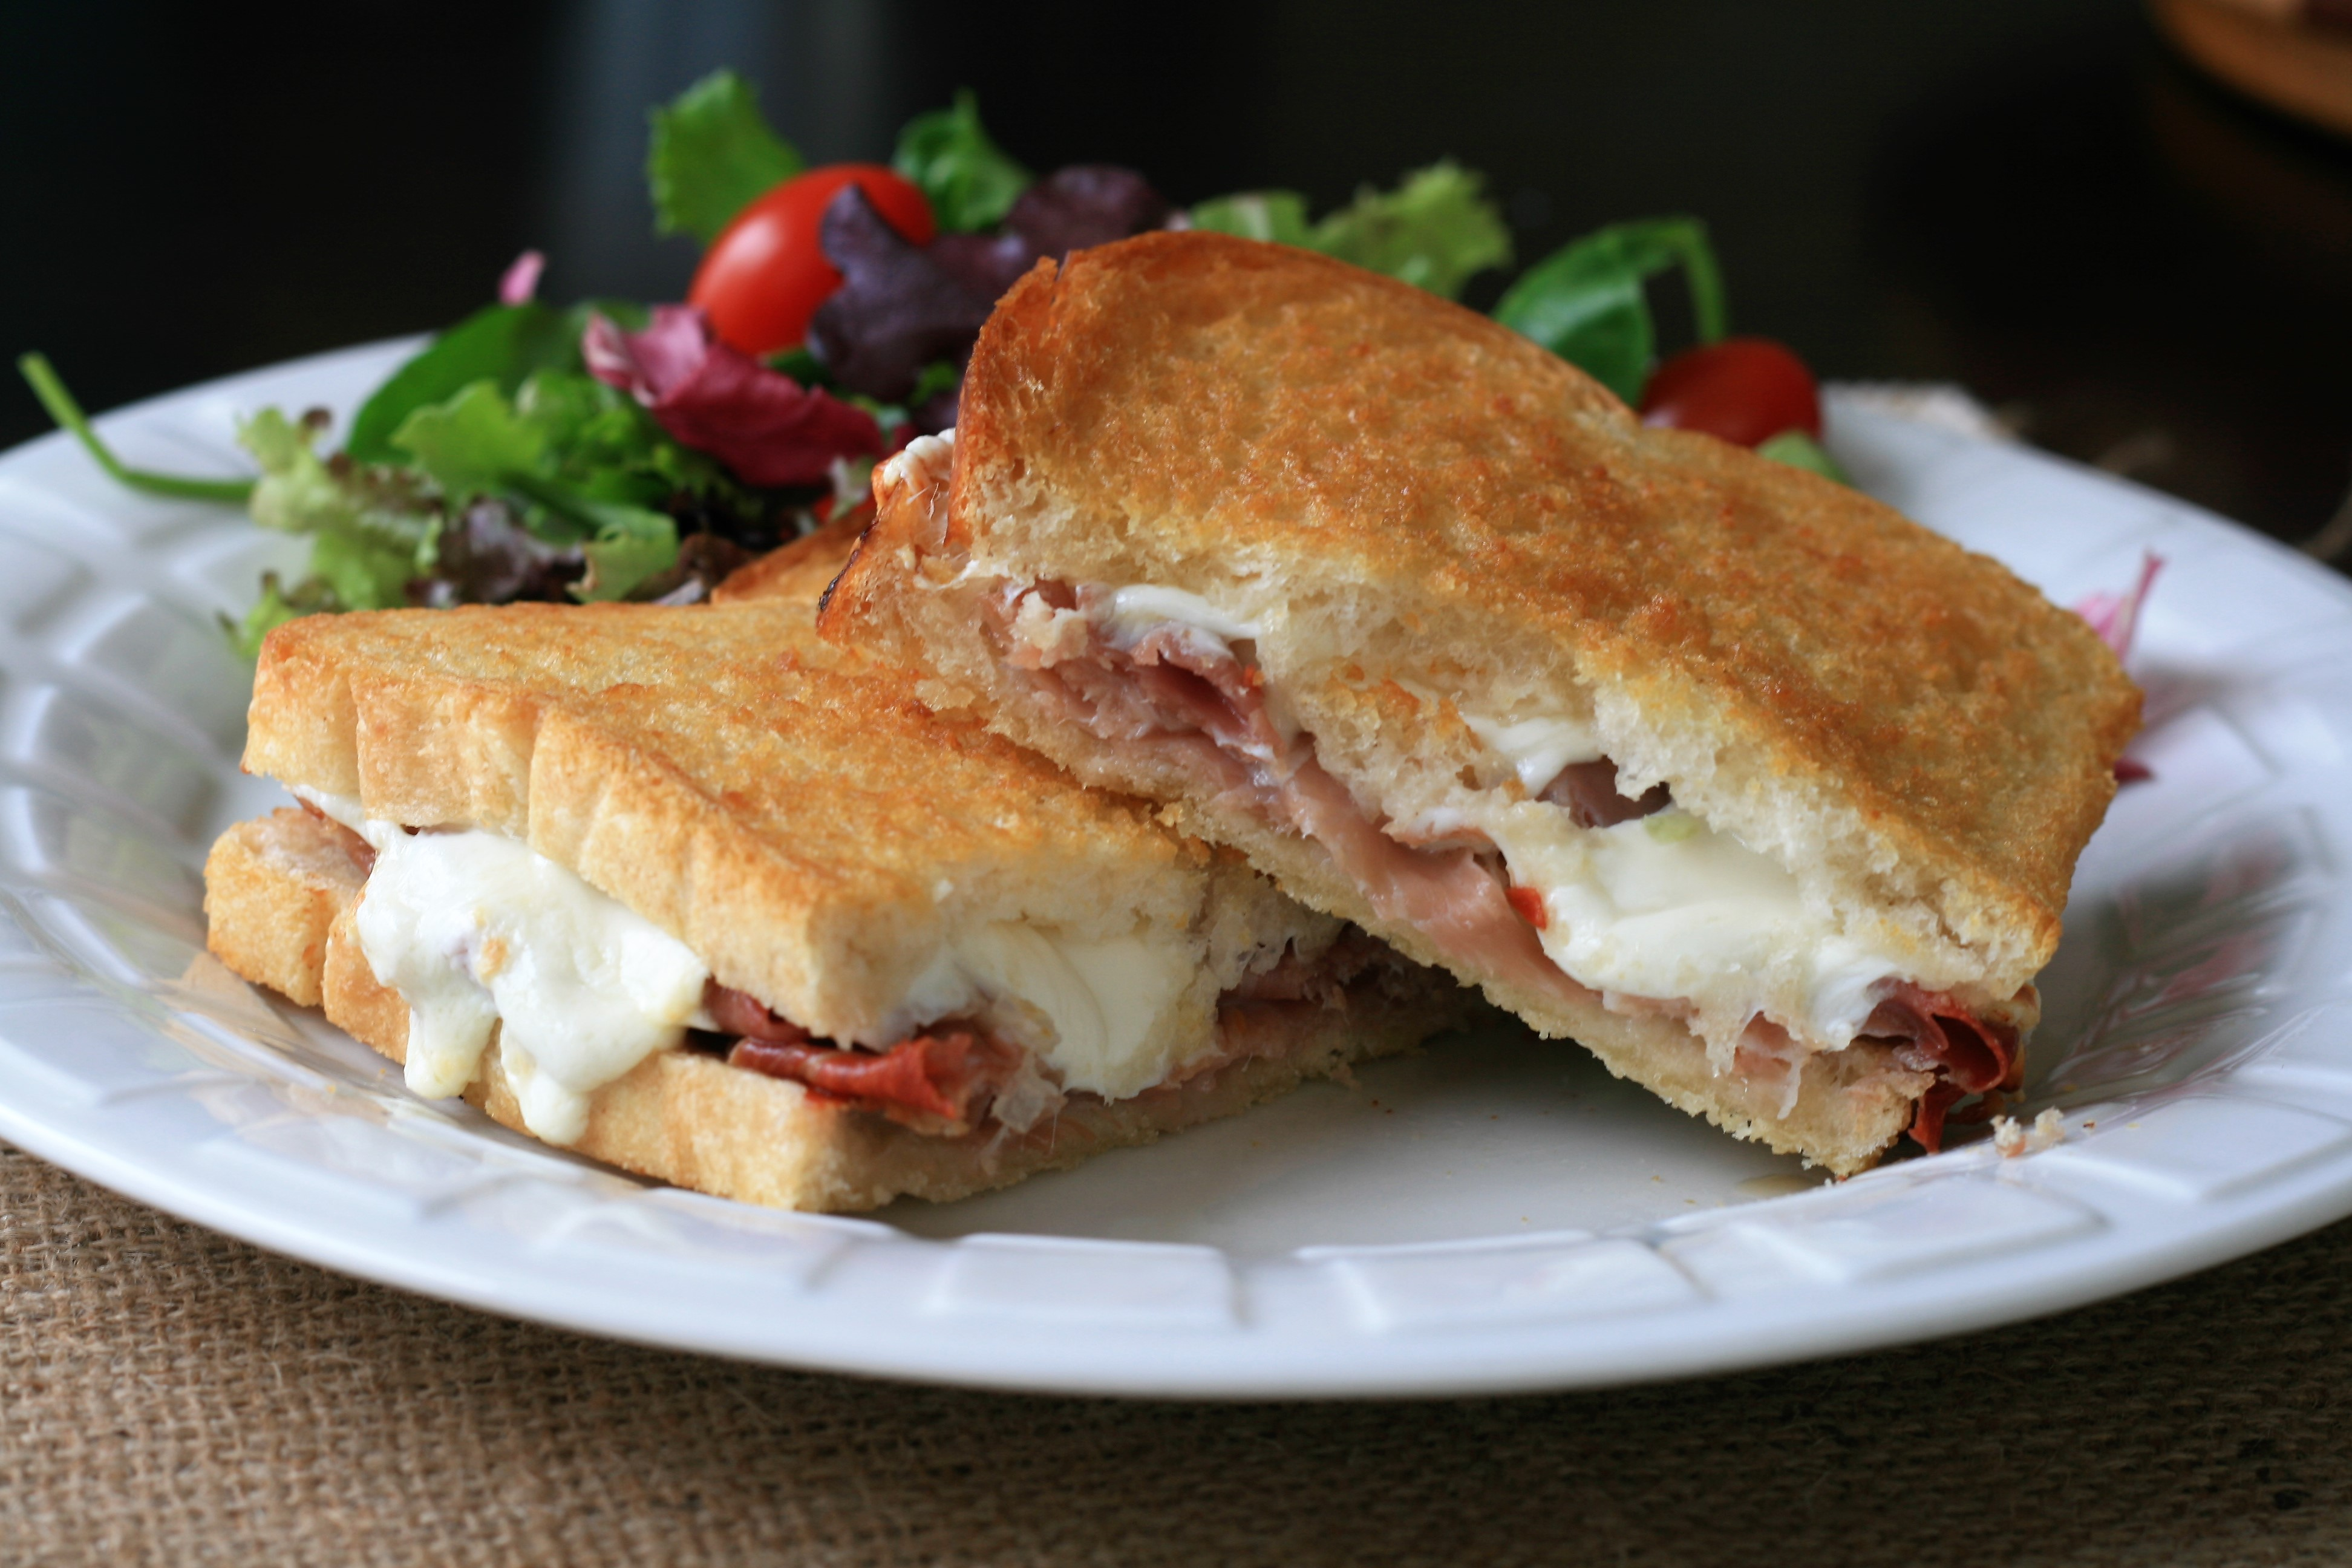 Air Fryer Prosciutto and Mozzarella Grilled Cheese